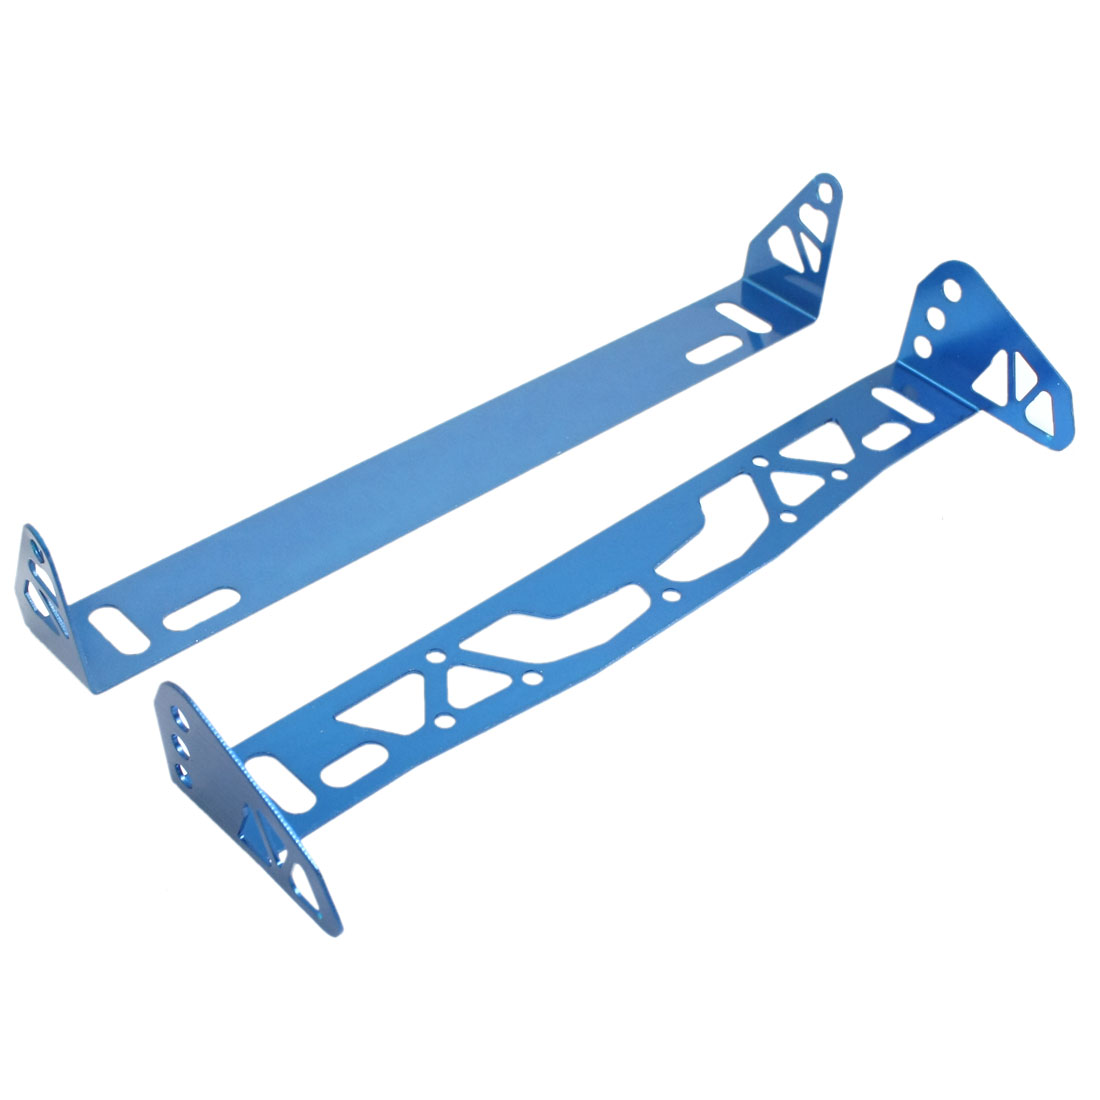 Pair Blue Metal Car License Plate Bracket Number Frame Holder